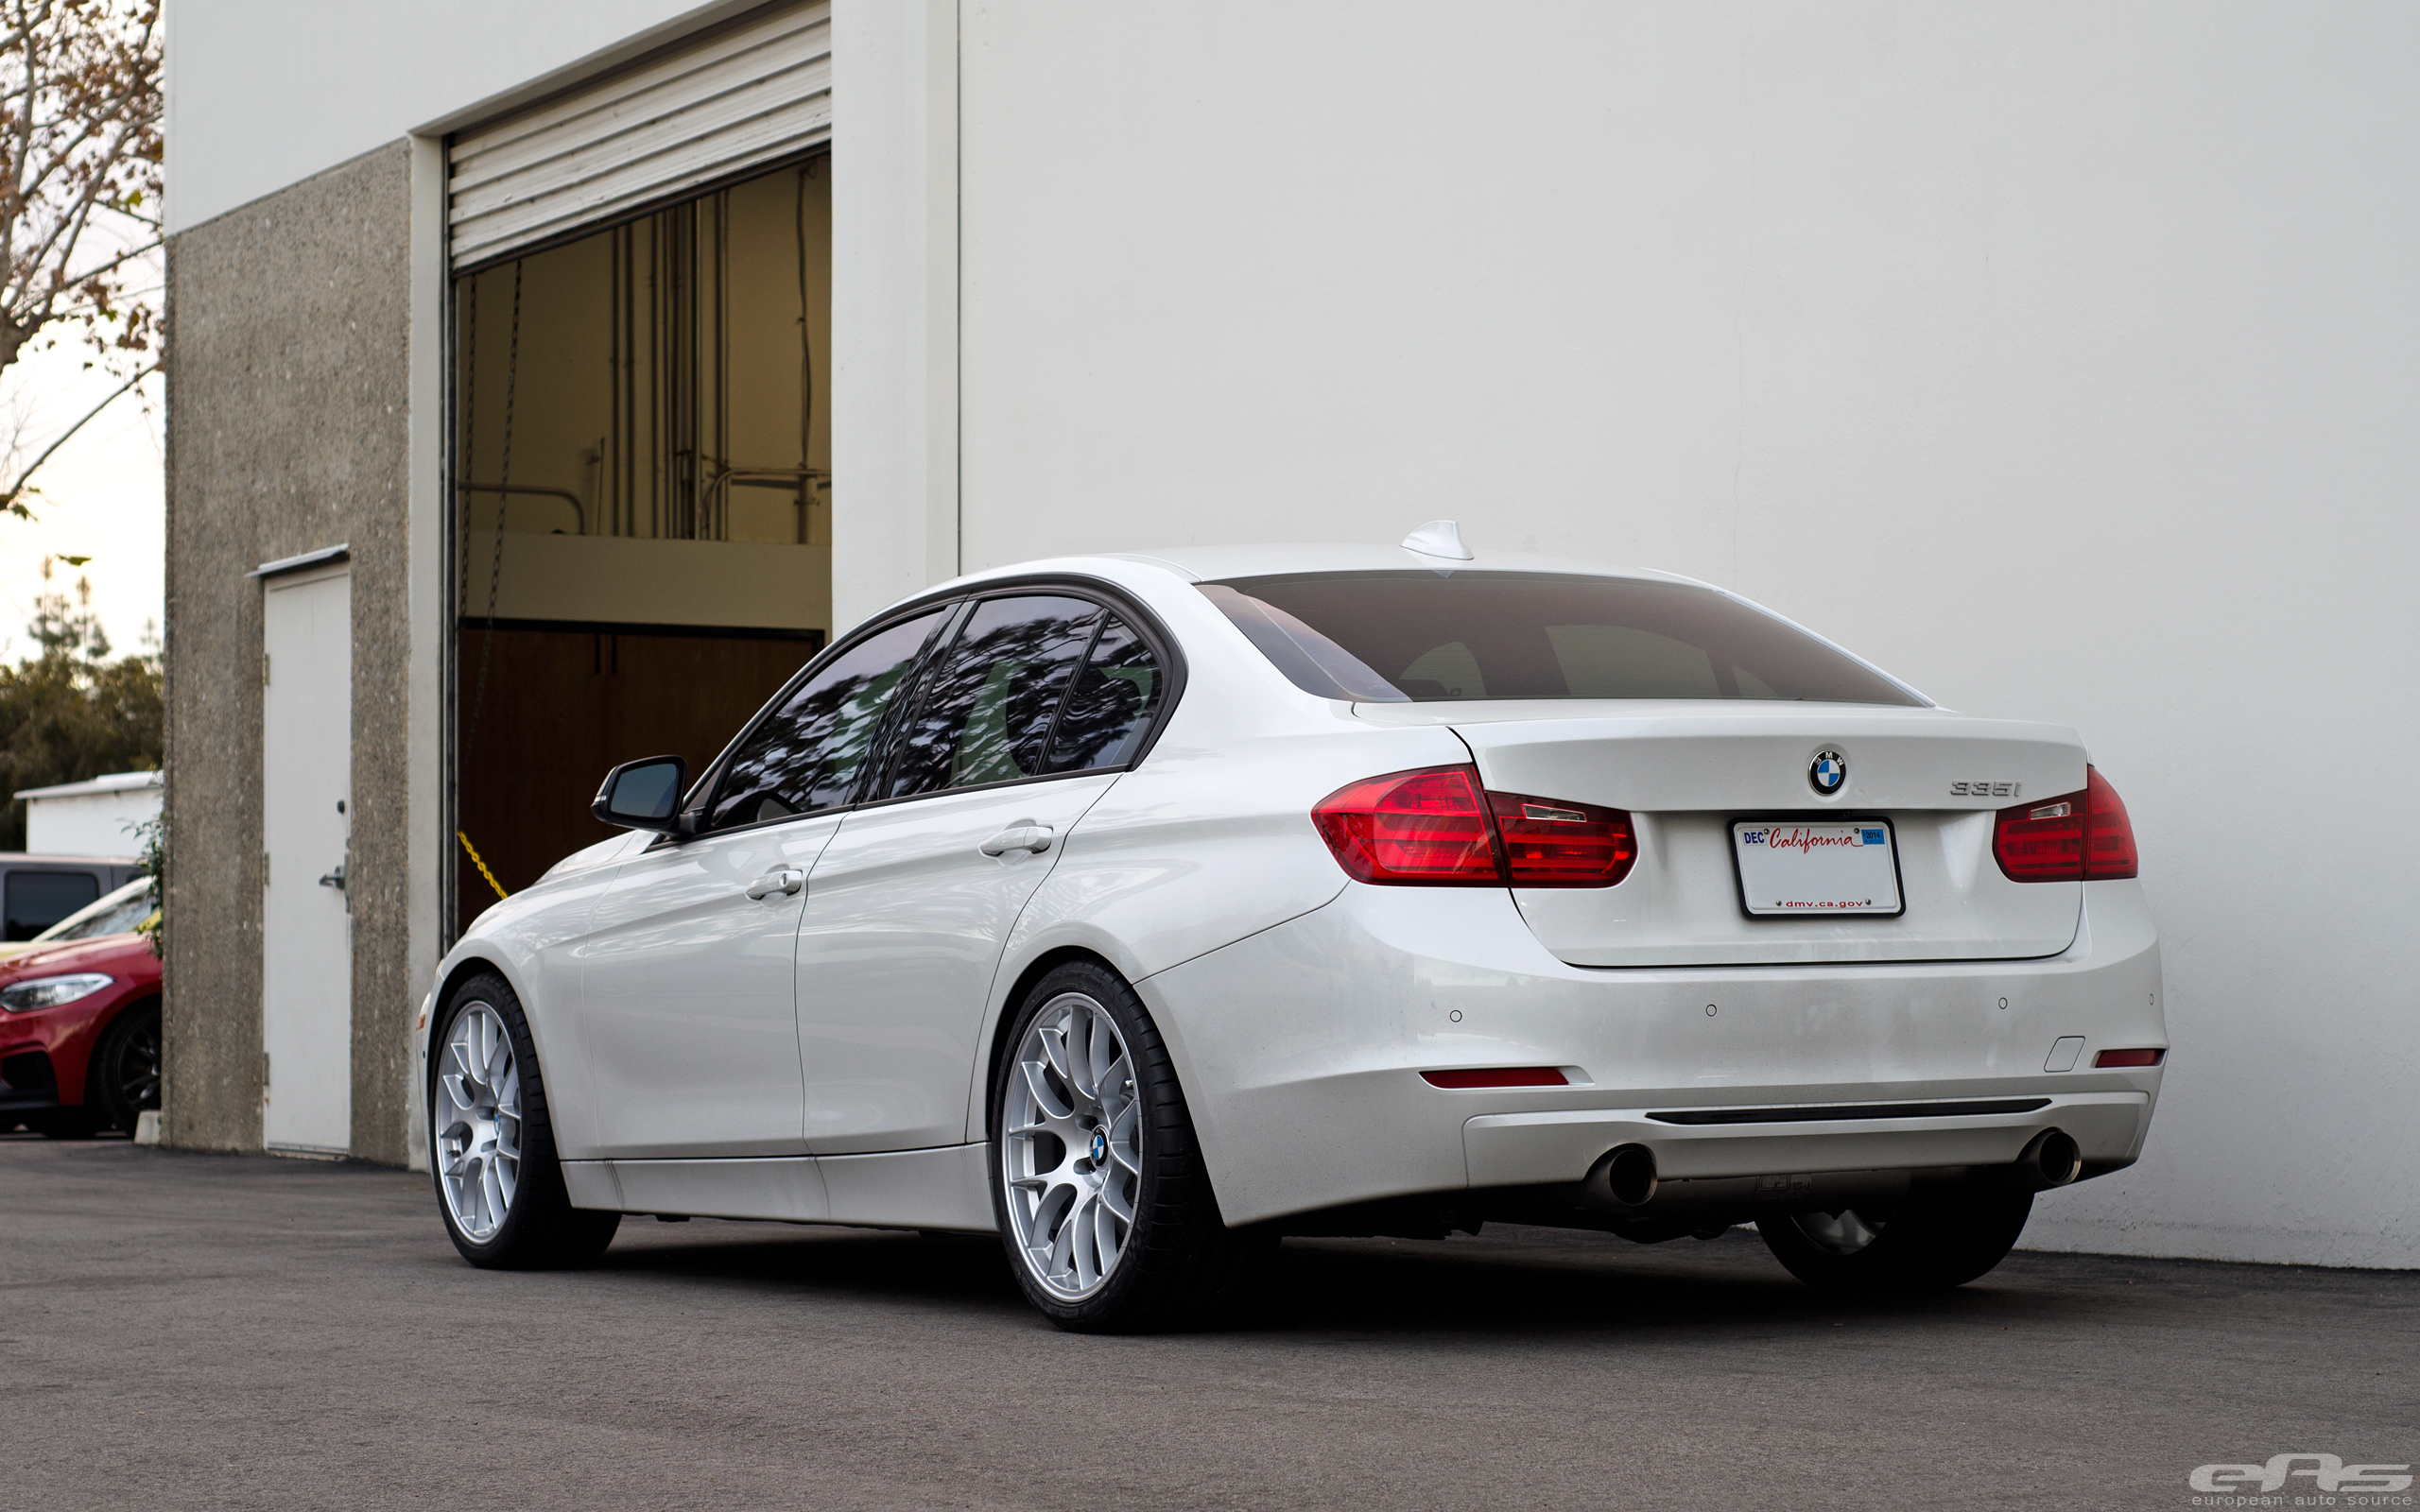 Mineral White BMW F30 3 Series Gets A Set Of Wheels 7